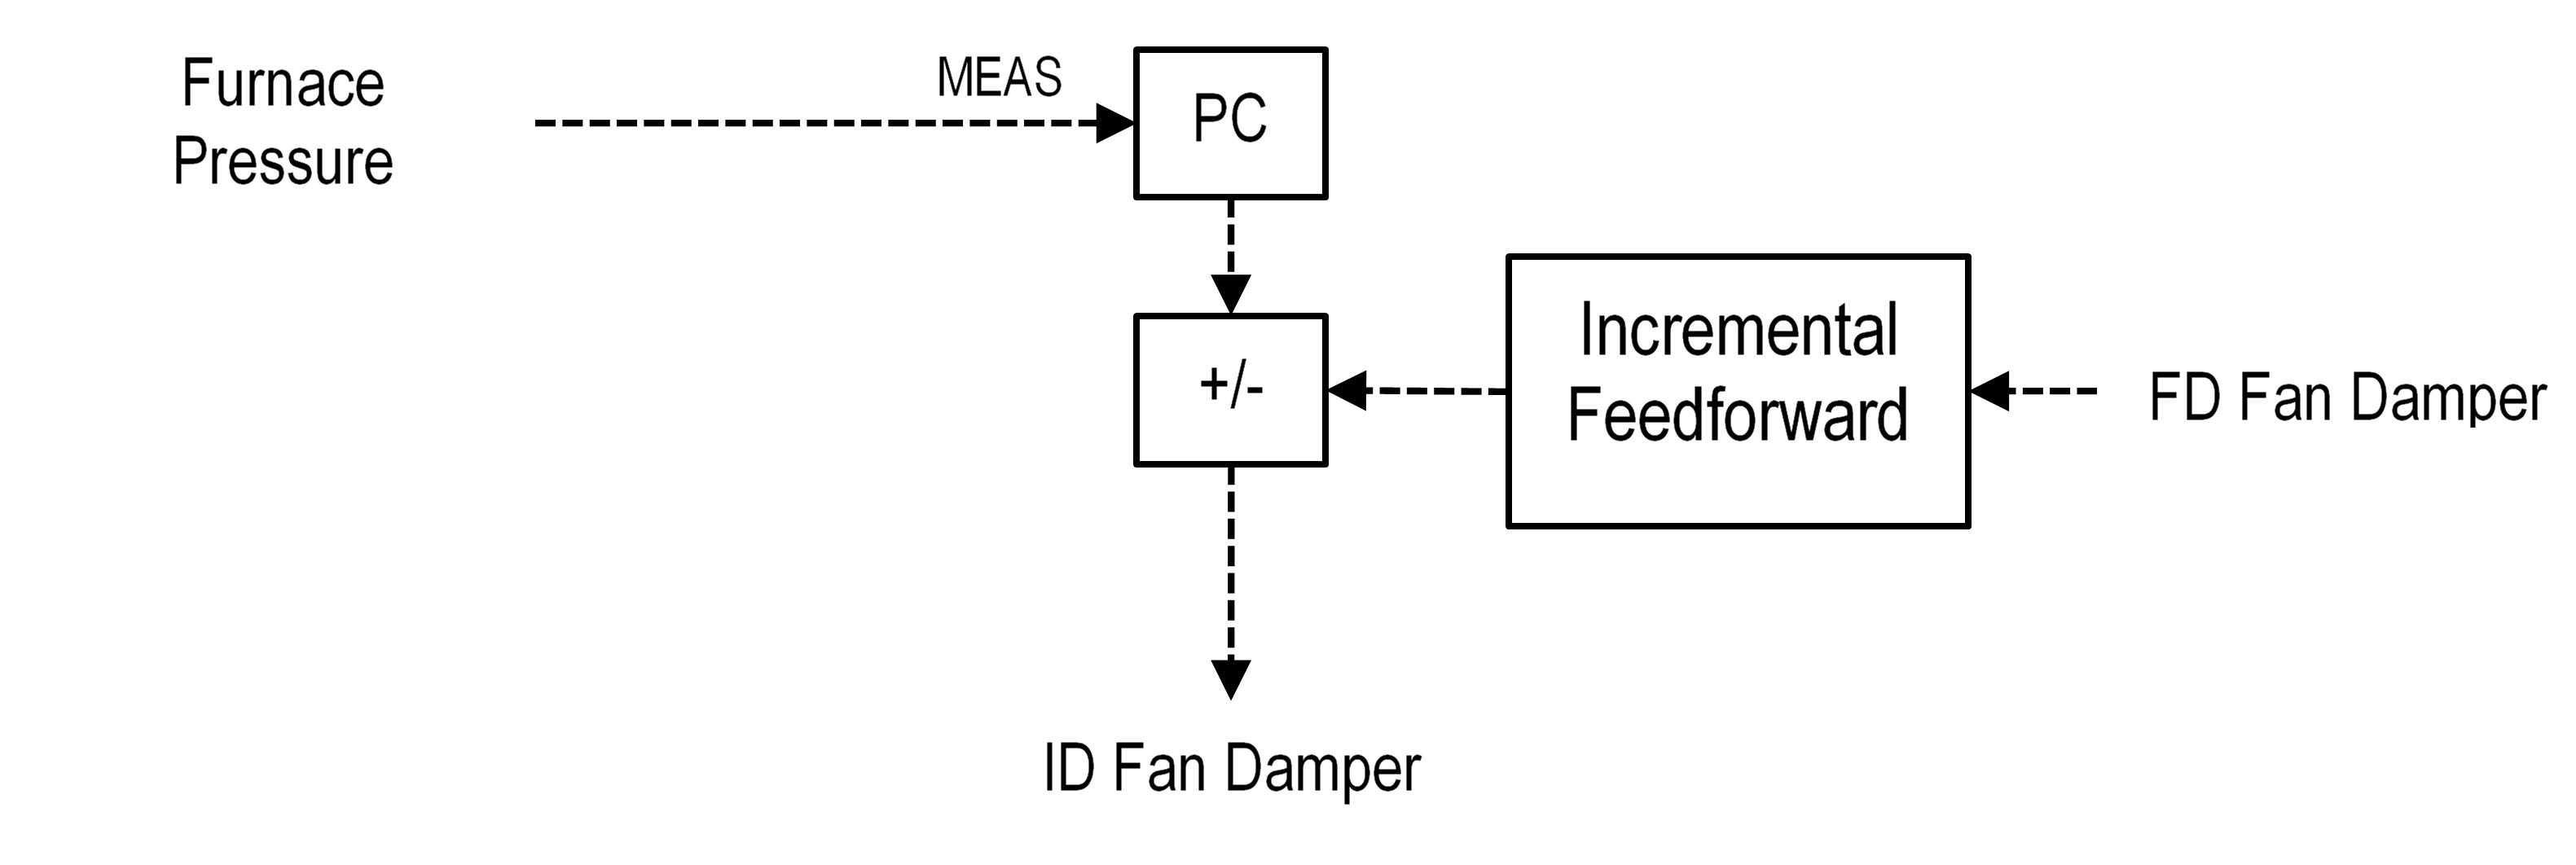 Figure 5 Furnace Pressure Control with Feedforward